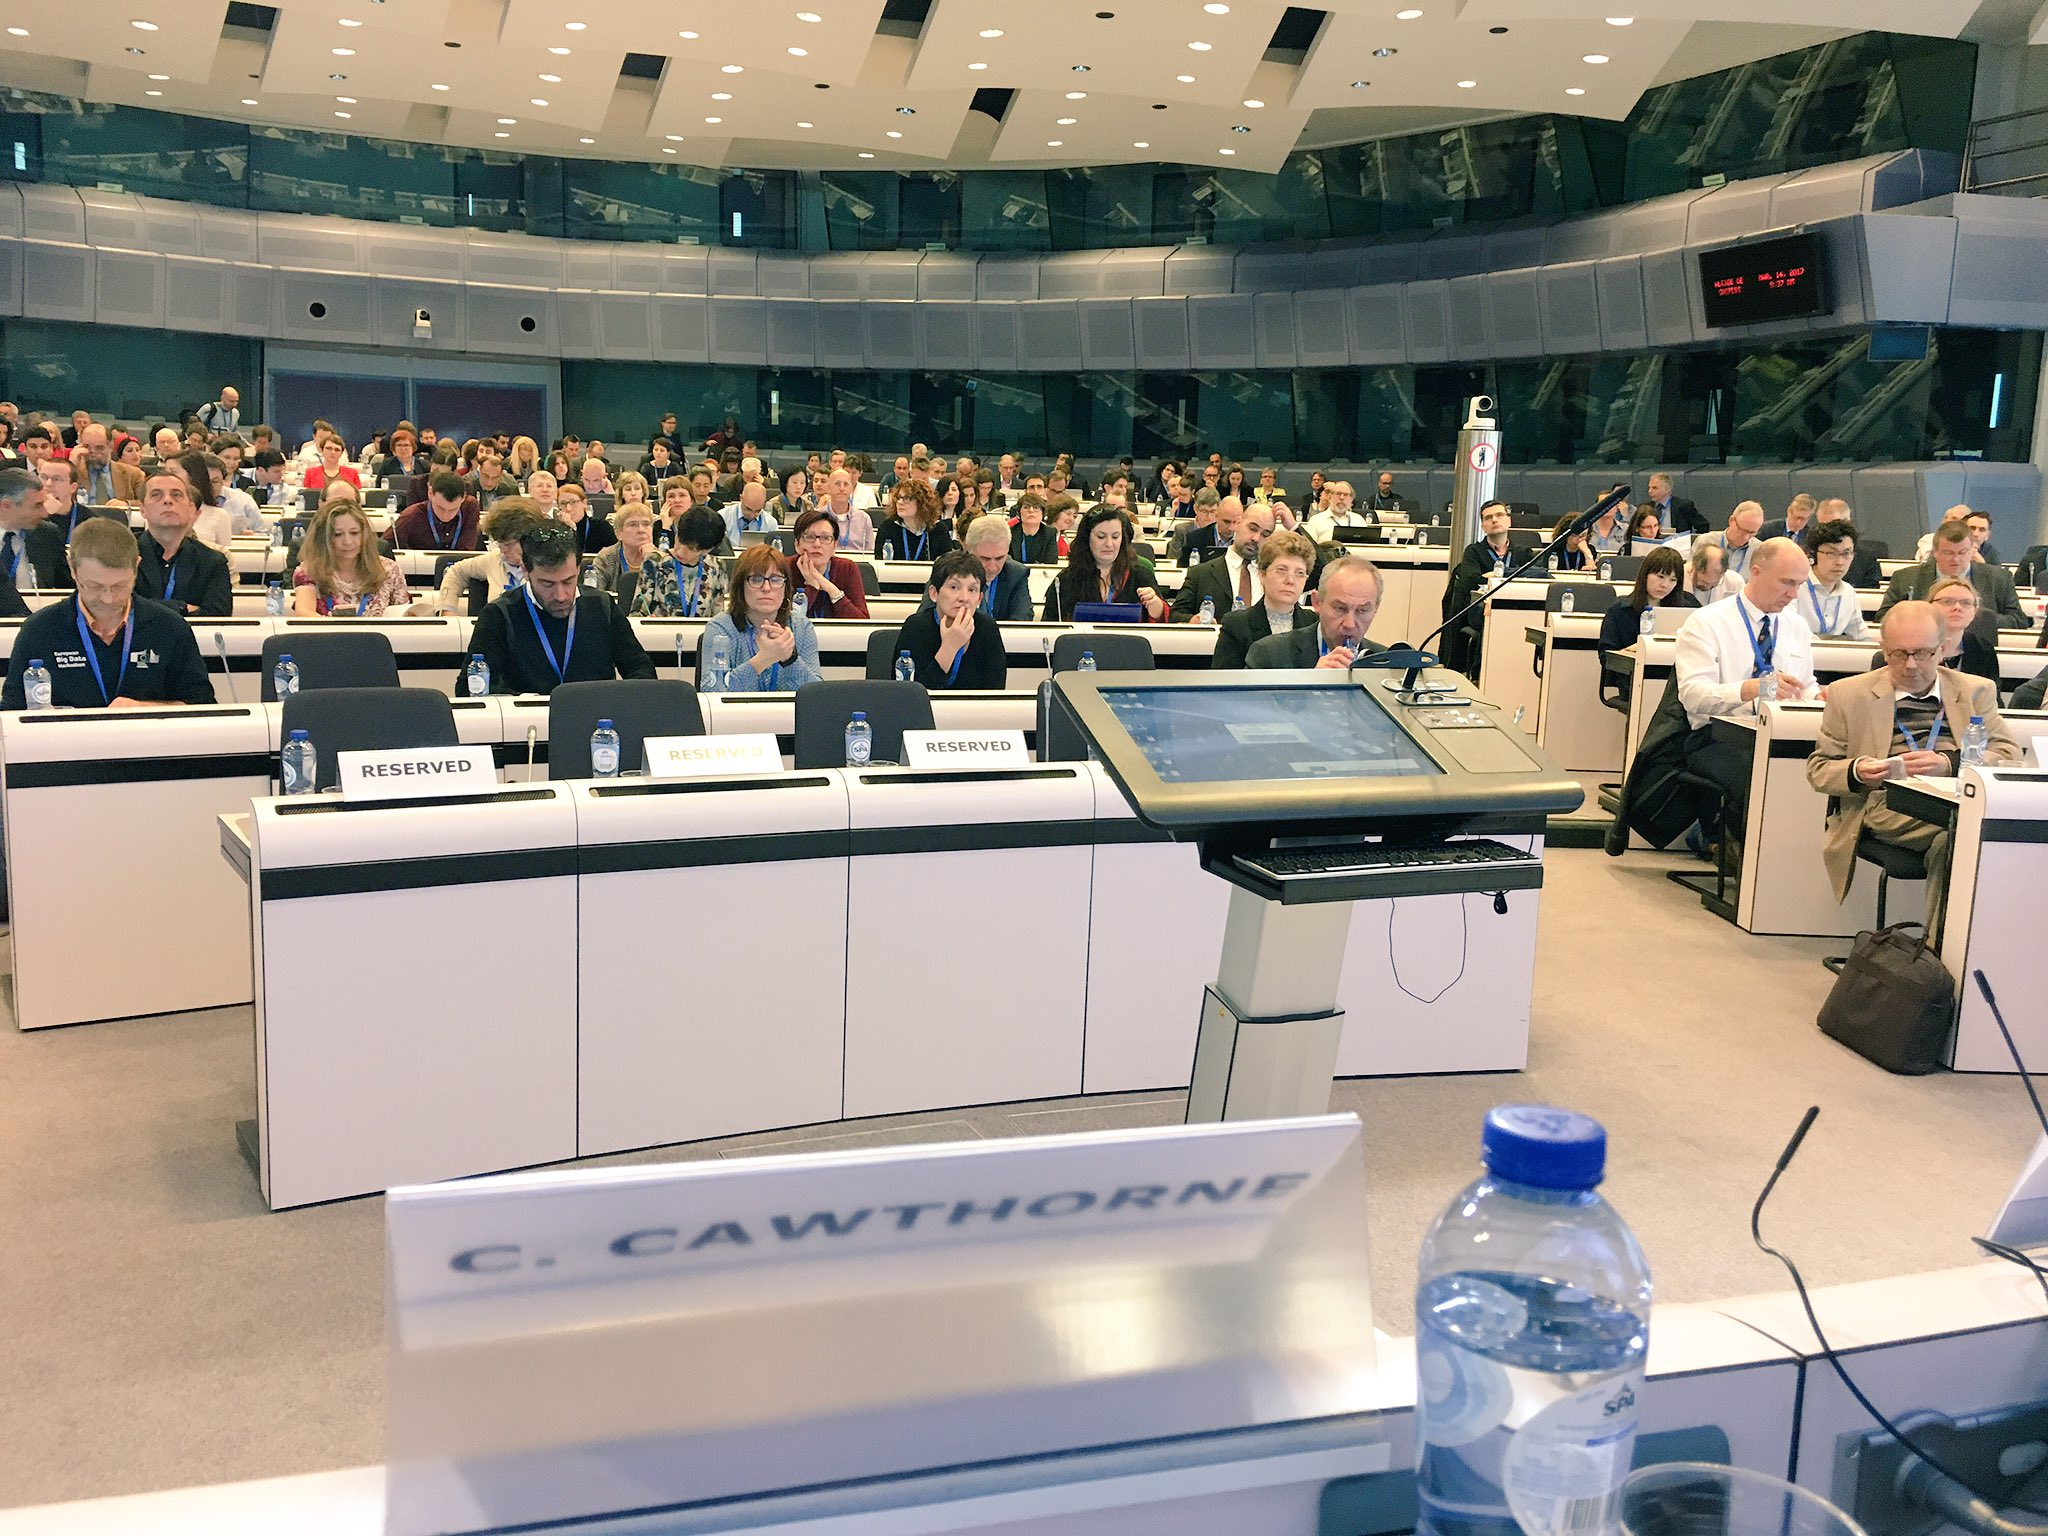 I've popped over to #NTTS2017 to give a keynote on why statisticians should be marketers too. It's packed! https://t.co/nzm9TxcWK5